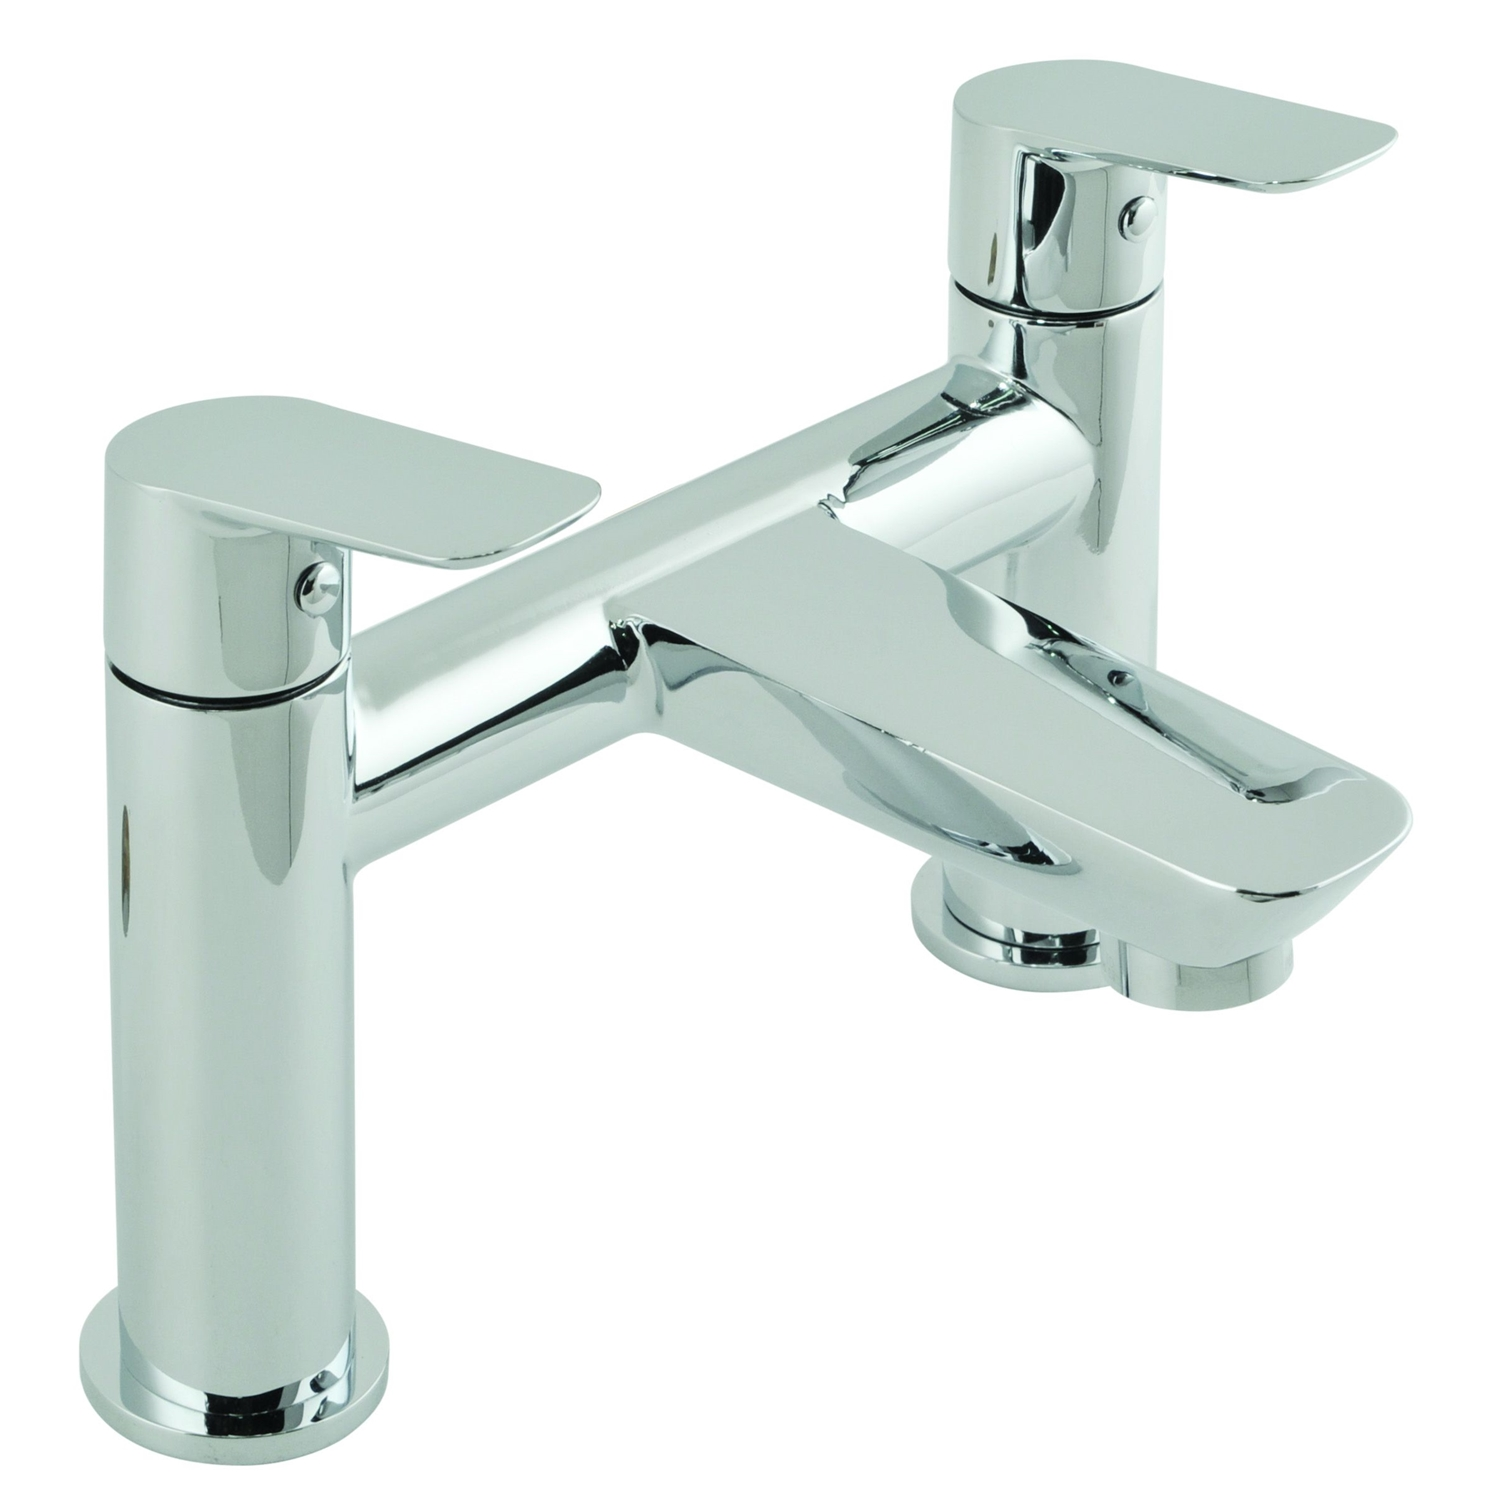 Image of Casa Panama 2 Hole Bath Filler Deck Mounted, Chrome